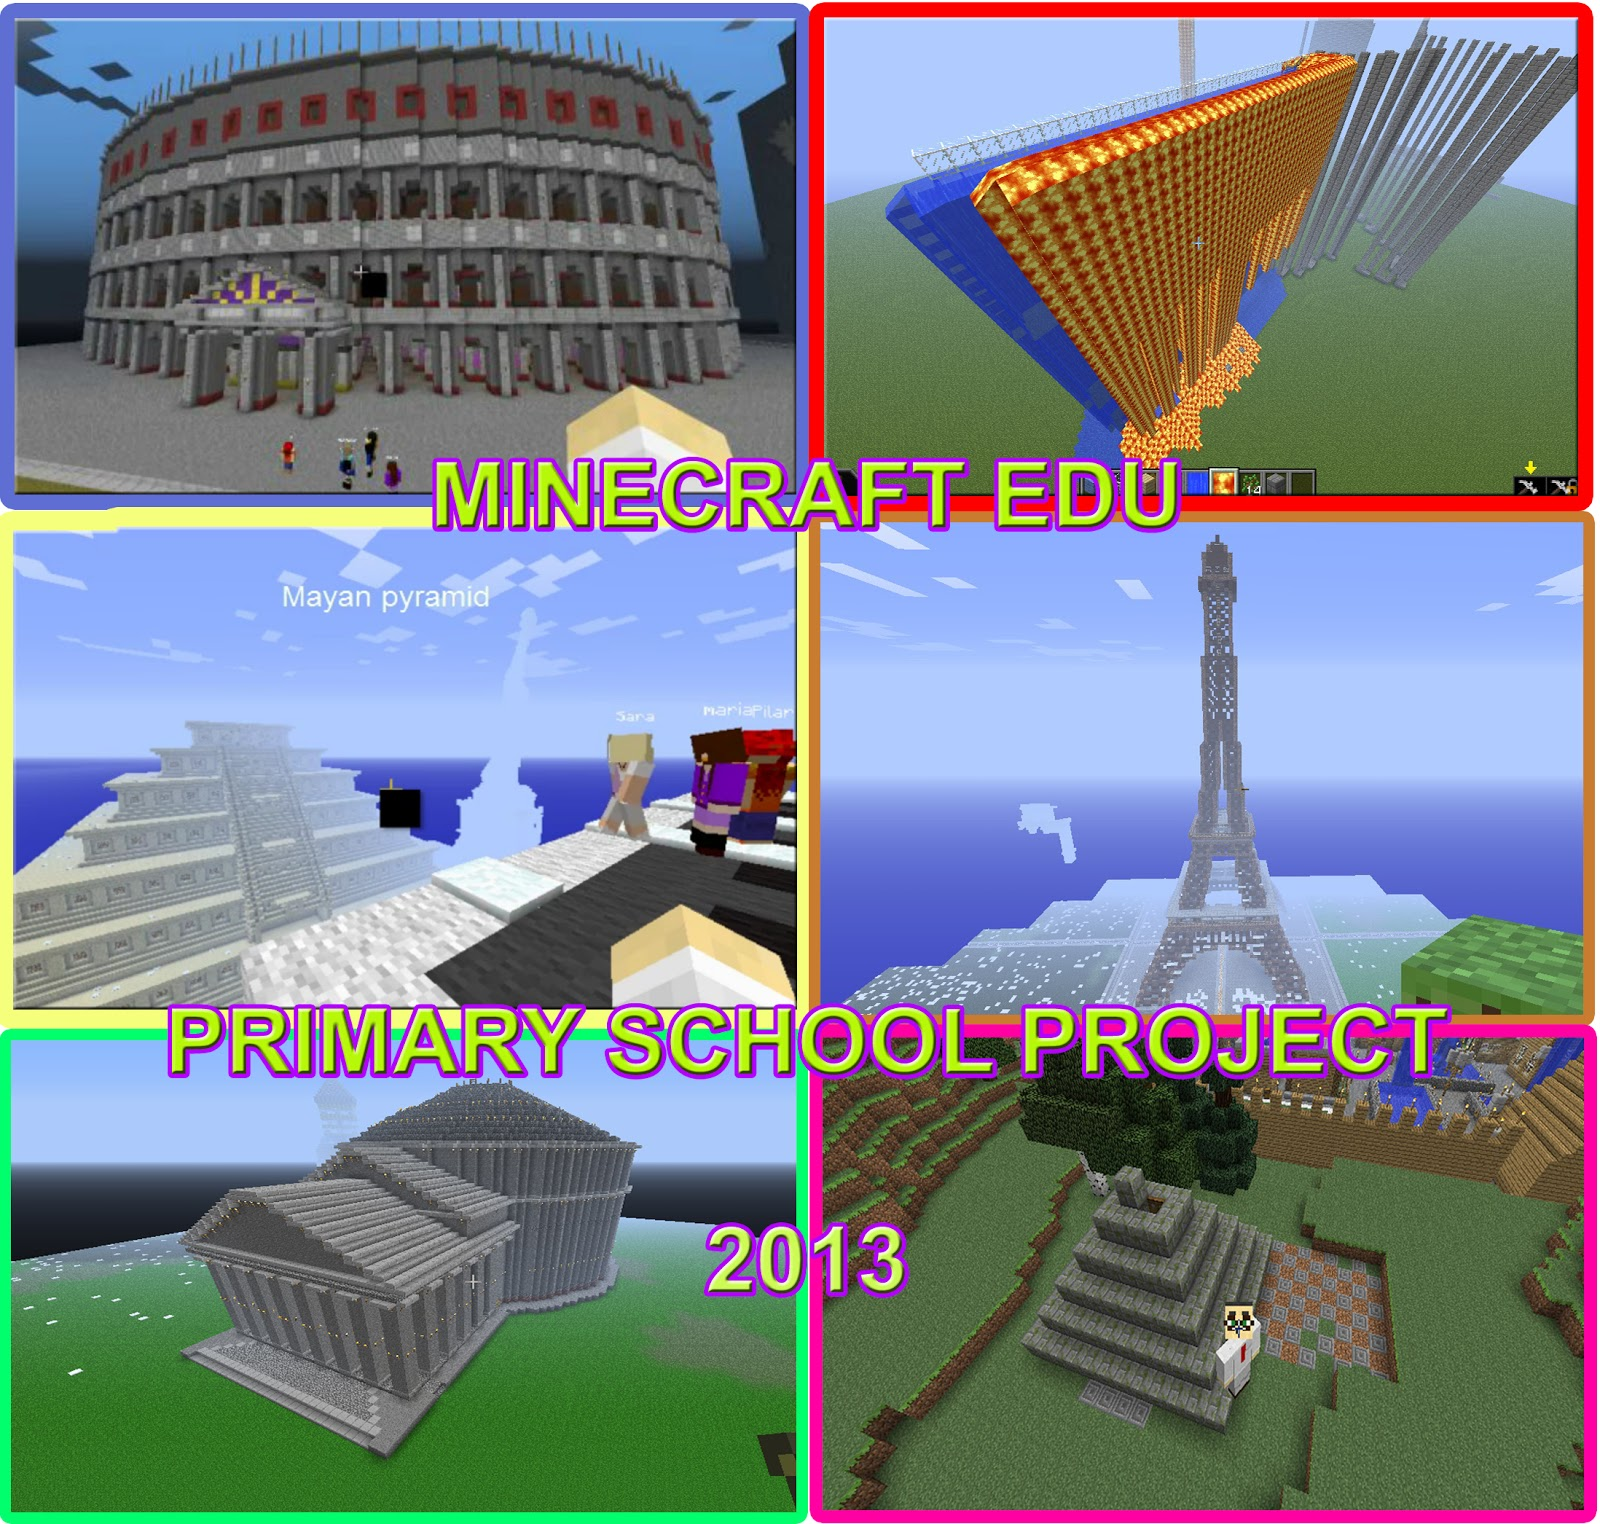 Free website minecraftedu team is Minecraft at School